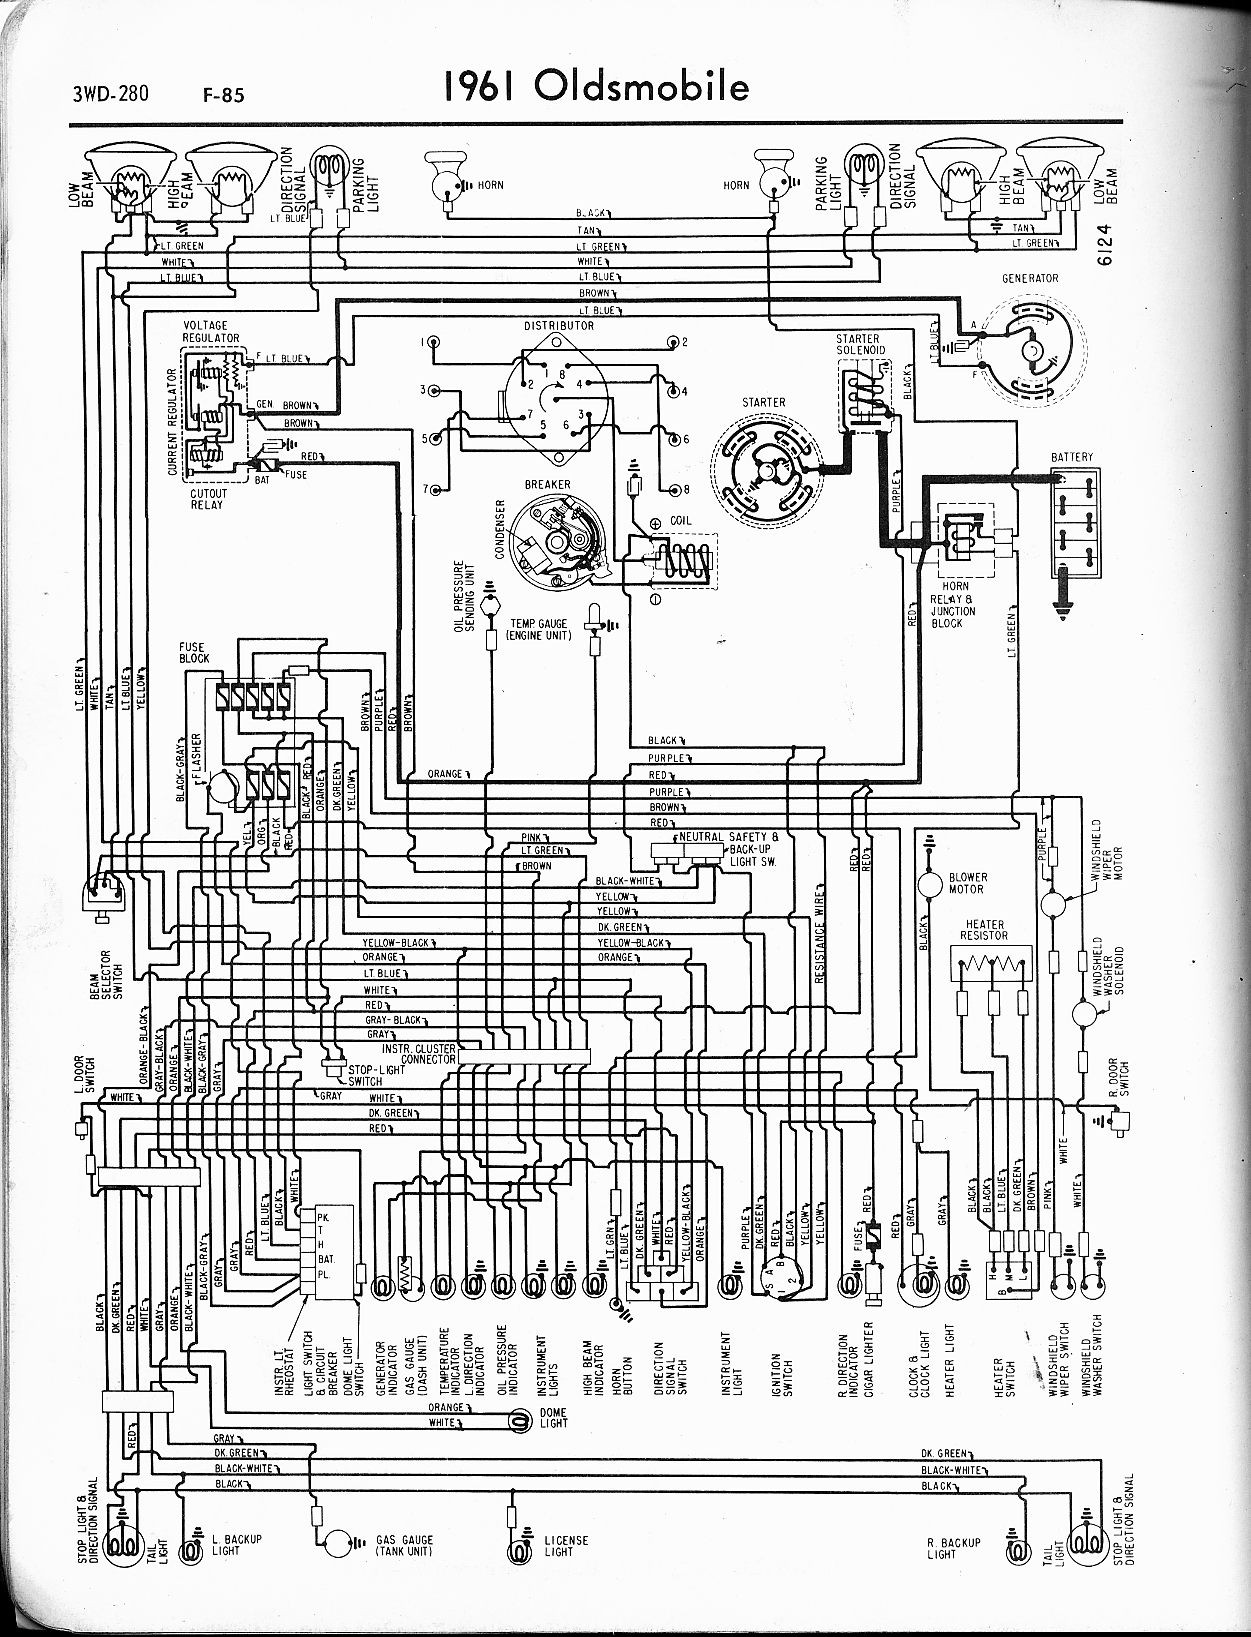 1973 Corvette Wiring Schematic Trusted Diagram 1967 Oldsmobile U2022 Electrical